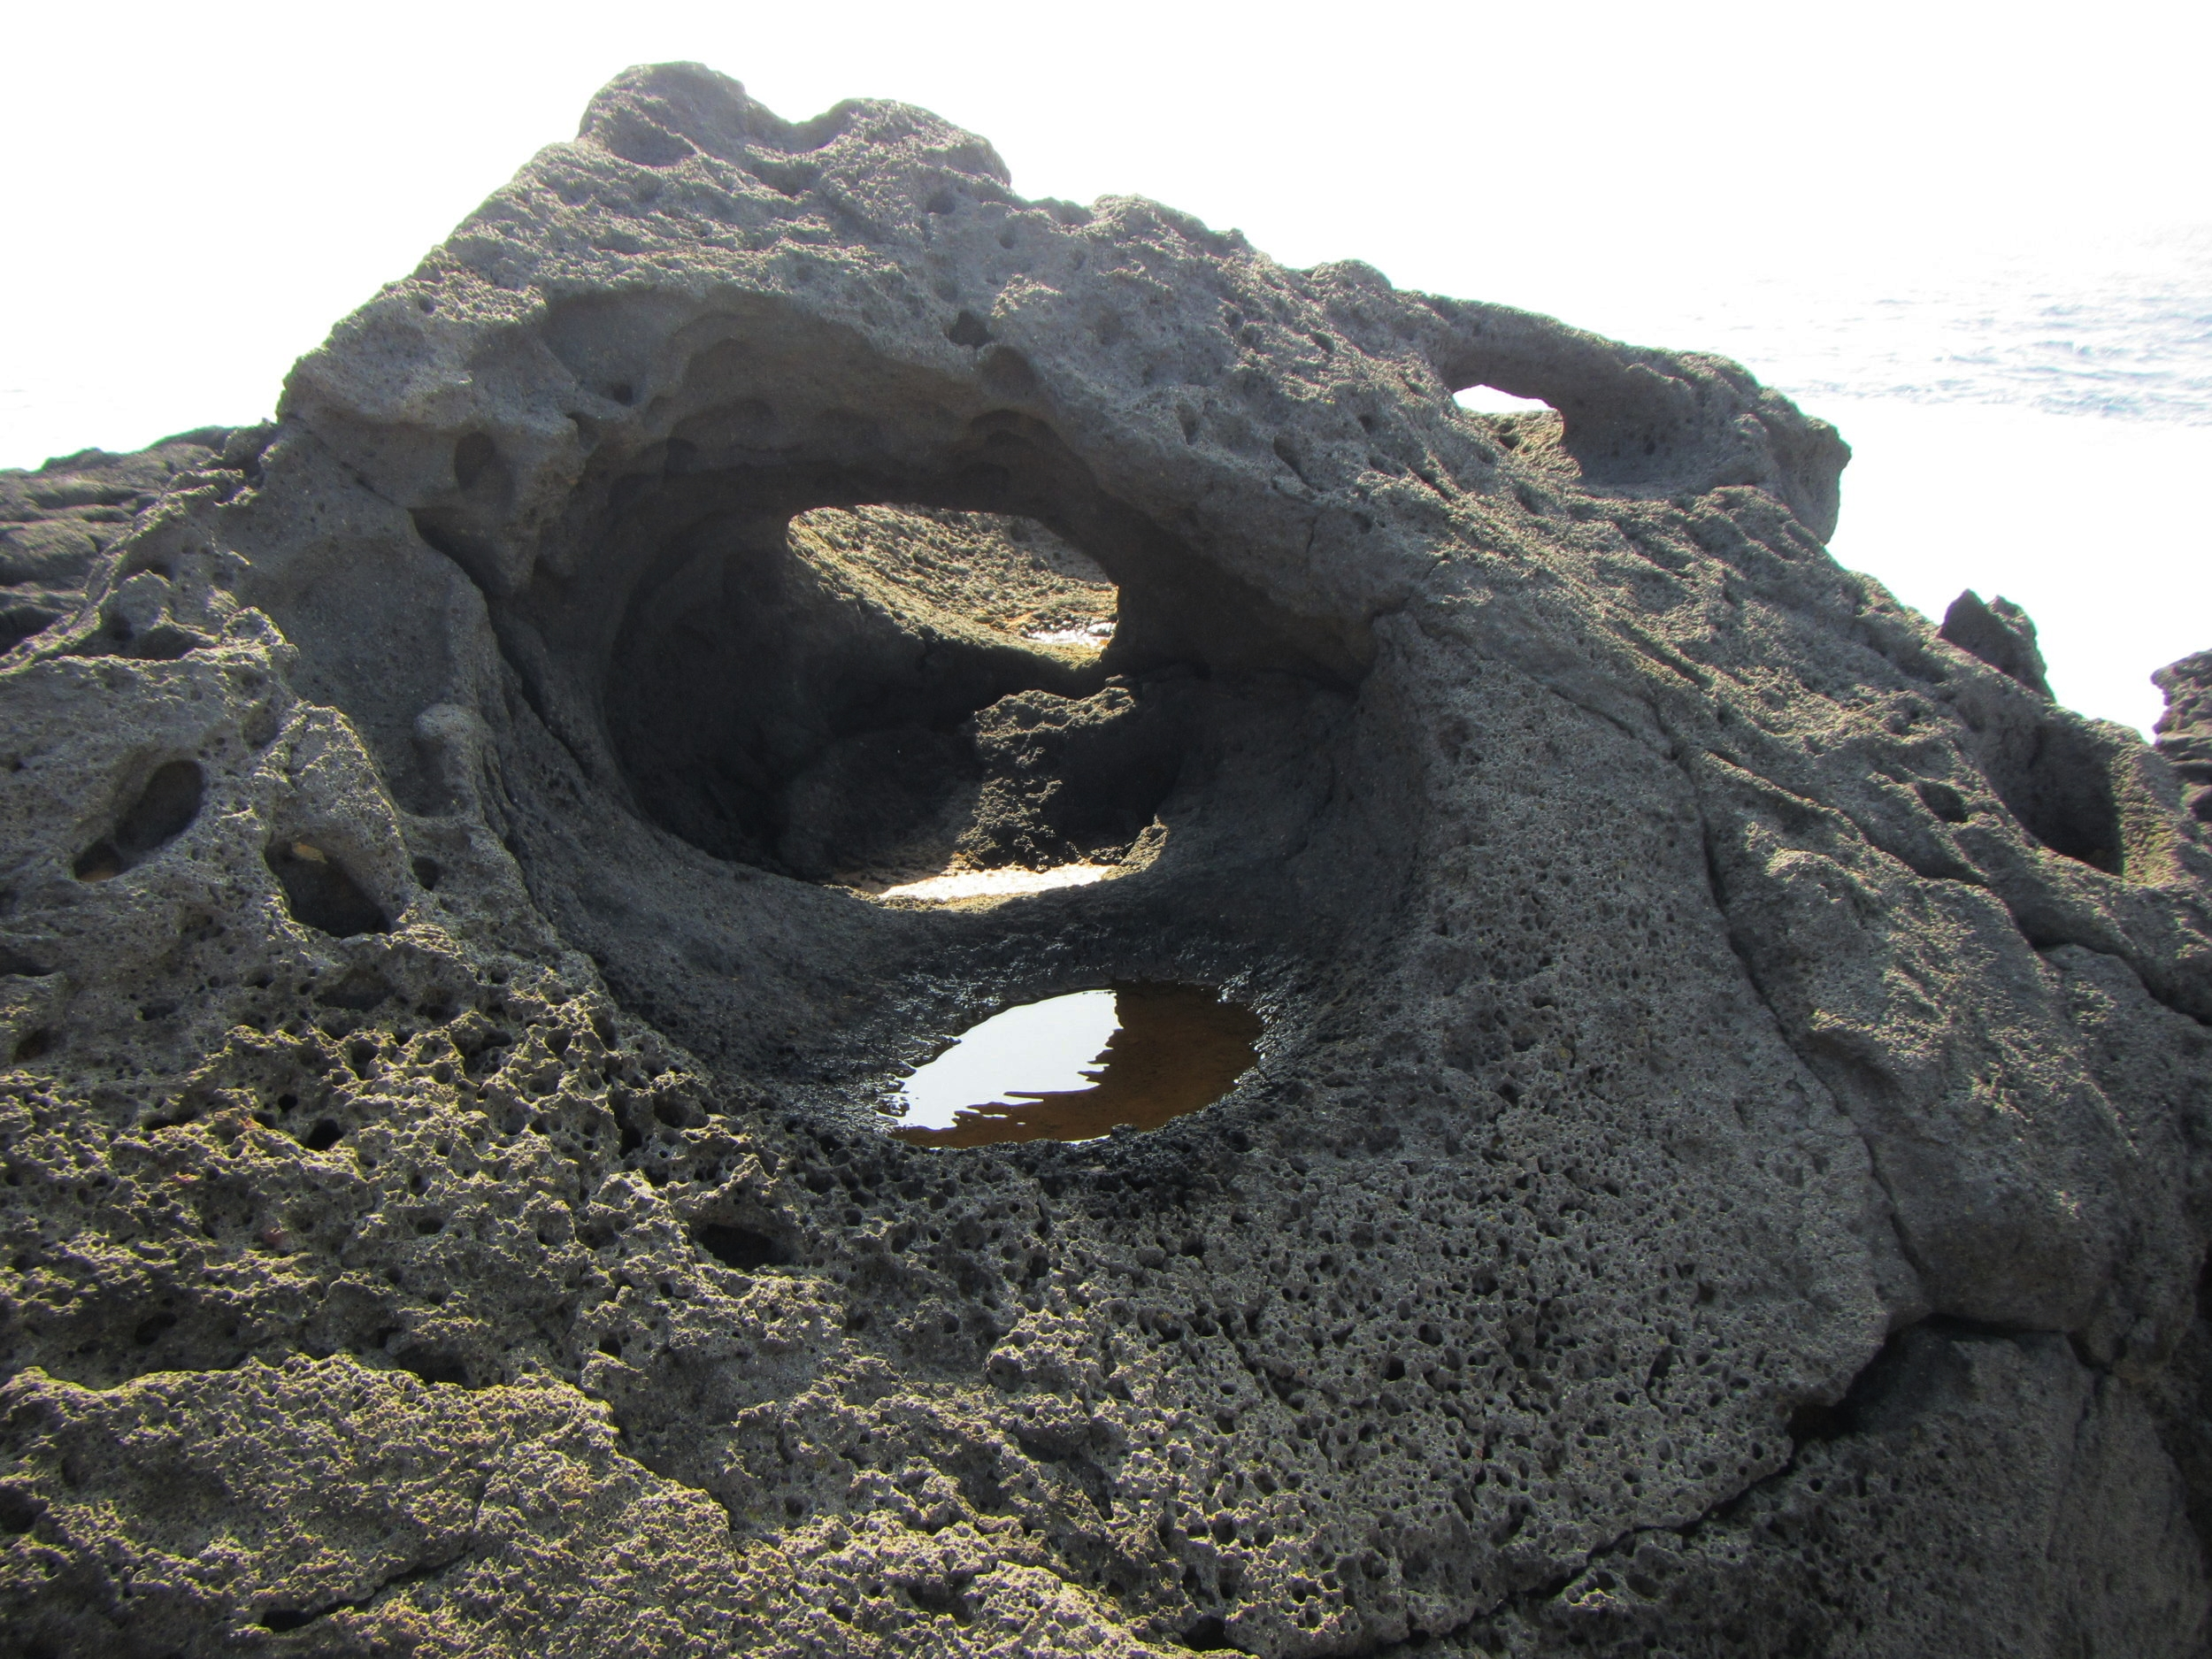 Stone anchor handles carved by ancient Hawaiians